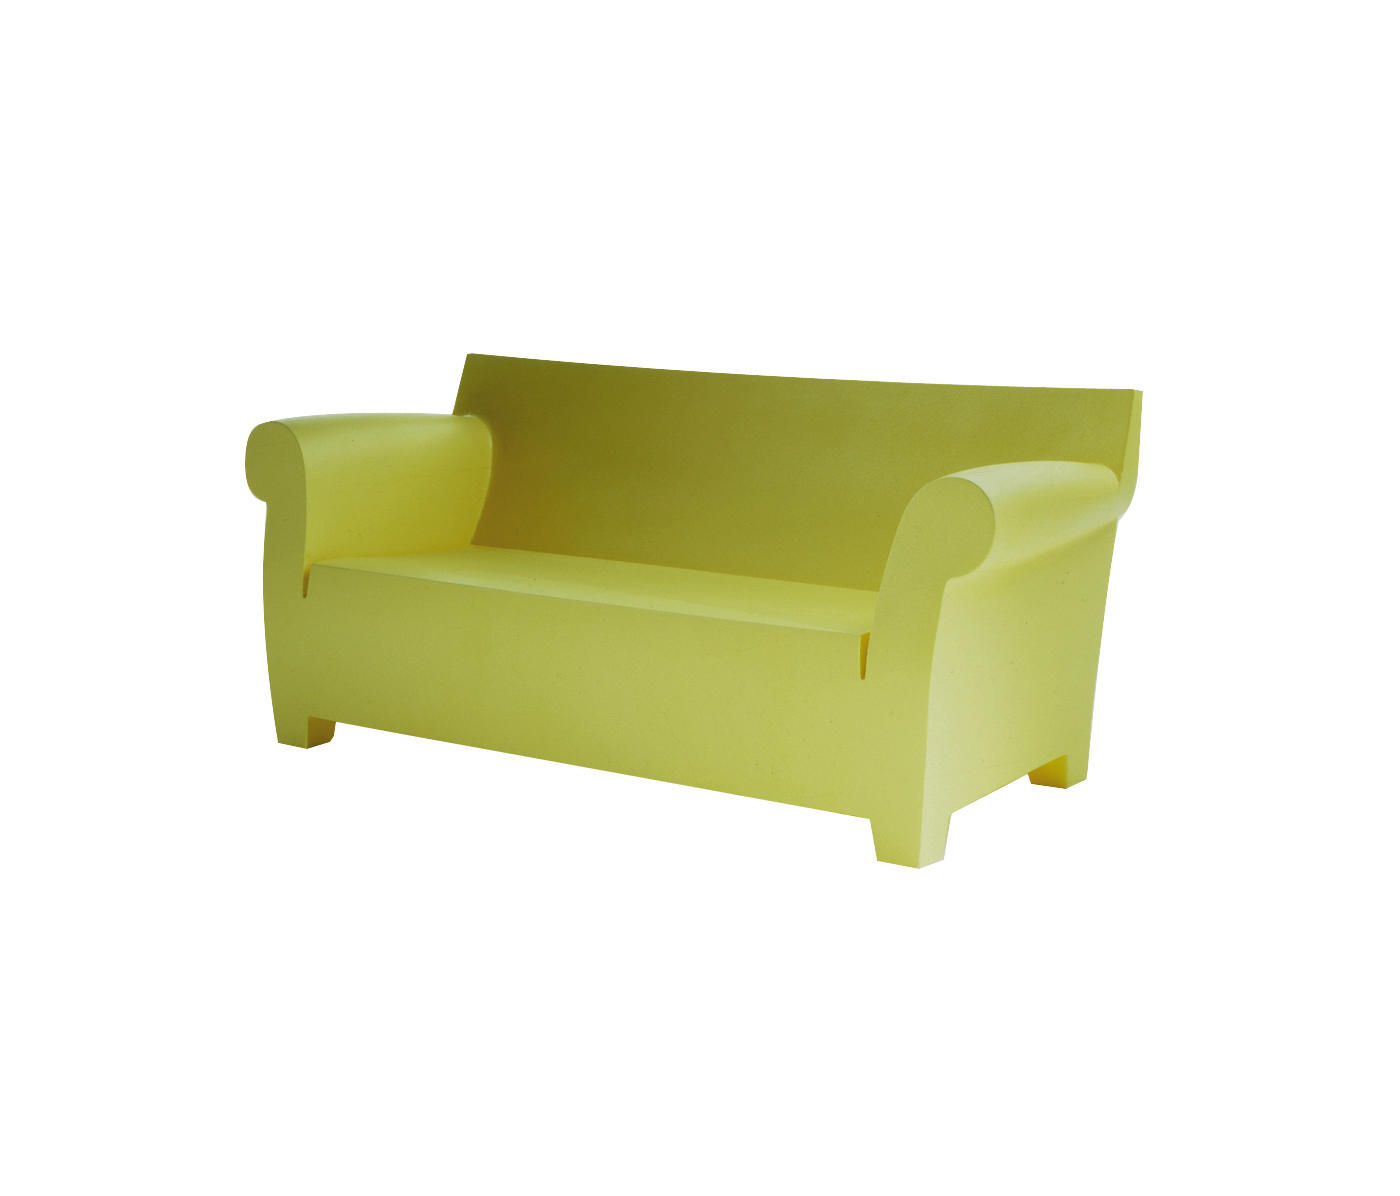 Architonic Regarding Well Known Bubble Club Sofas (View 3 of 20)